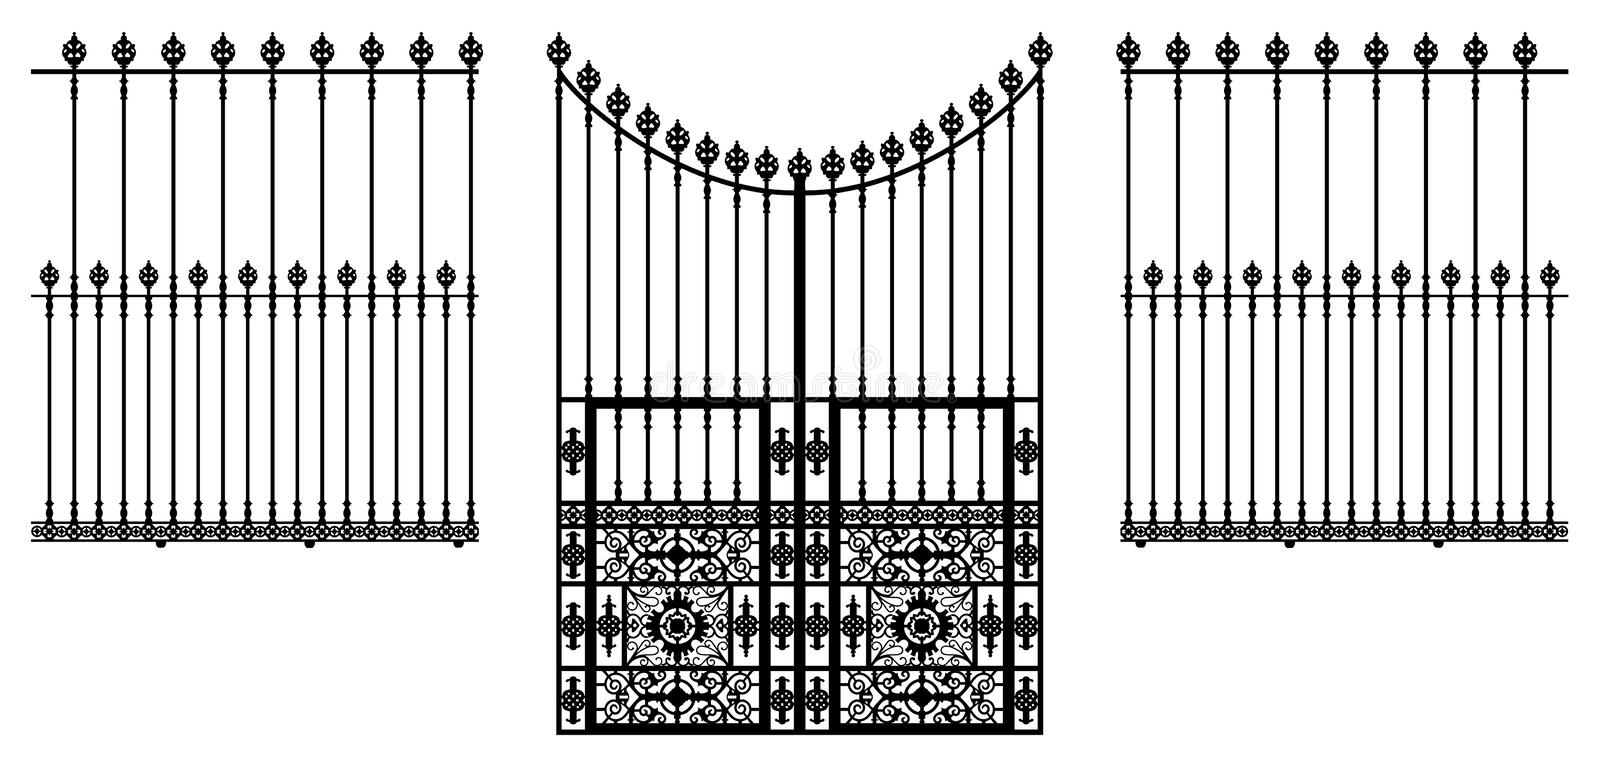 Gate and Fences. Wrought iron ornamental gate and fences illustration royalty free illustration